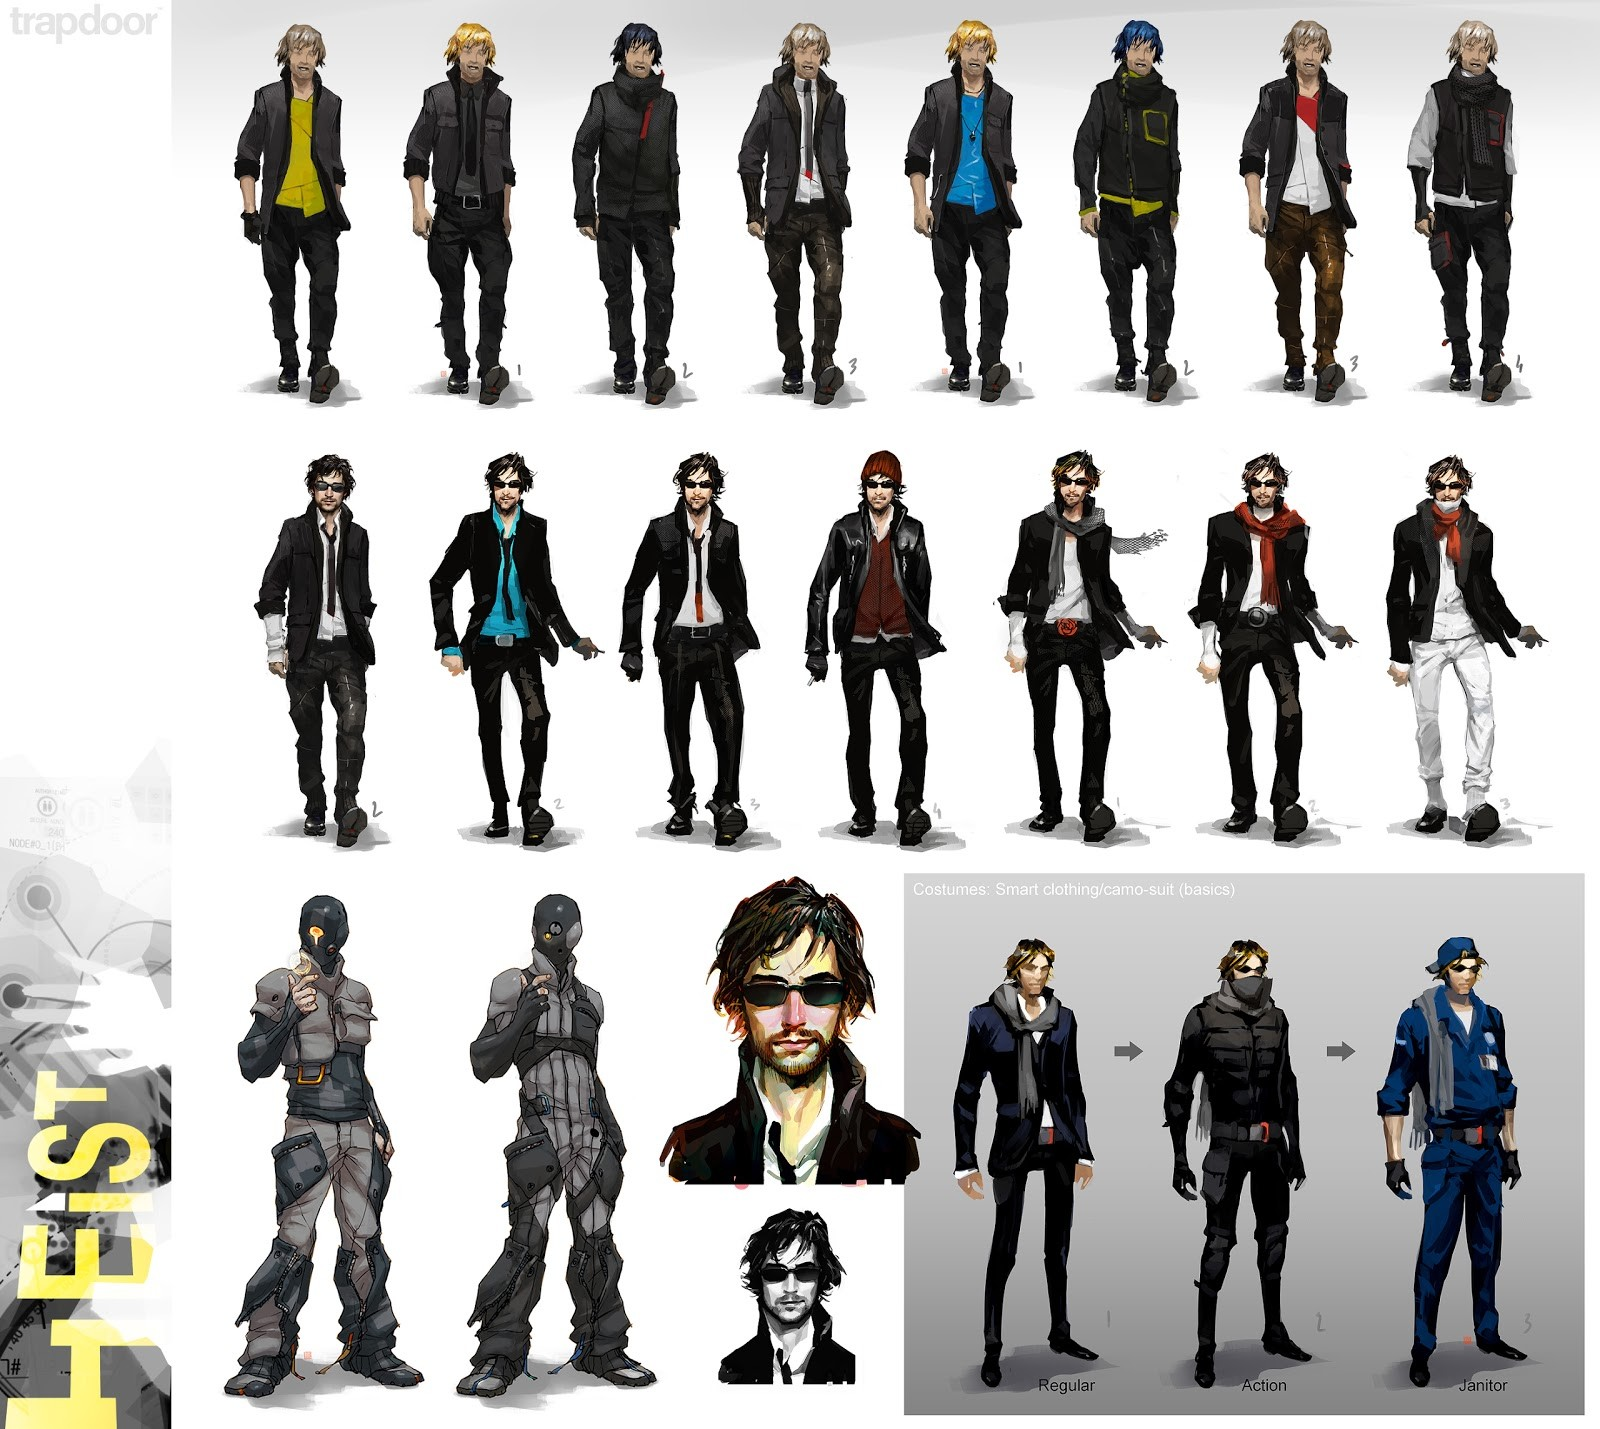 Thierry doizon bt heist characters01